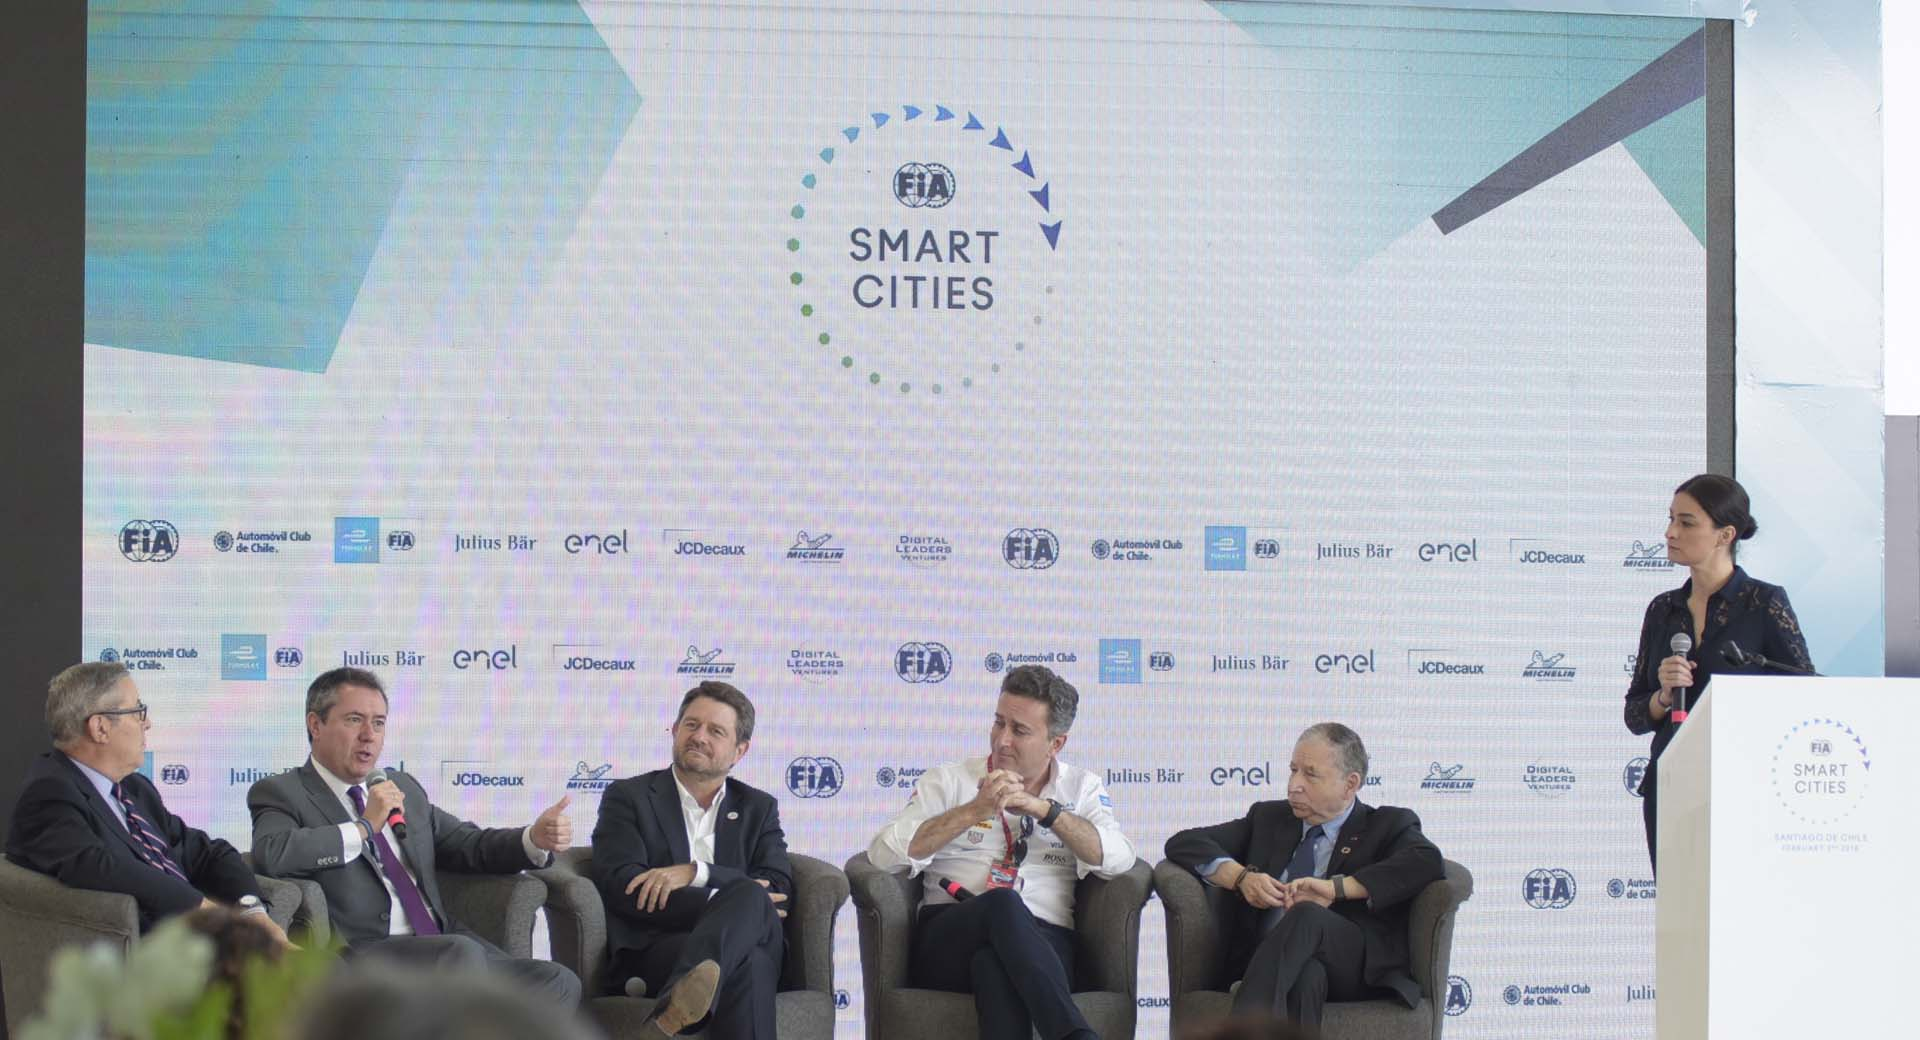 The role of clean mobility for a strong economy discussed at FIA Smart Cities Forum in Santiago de Chile